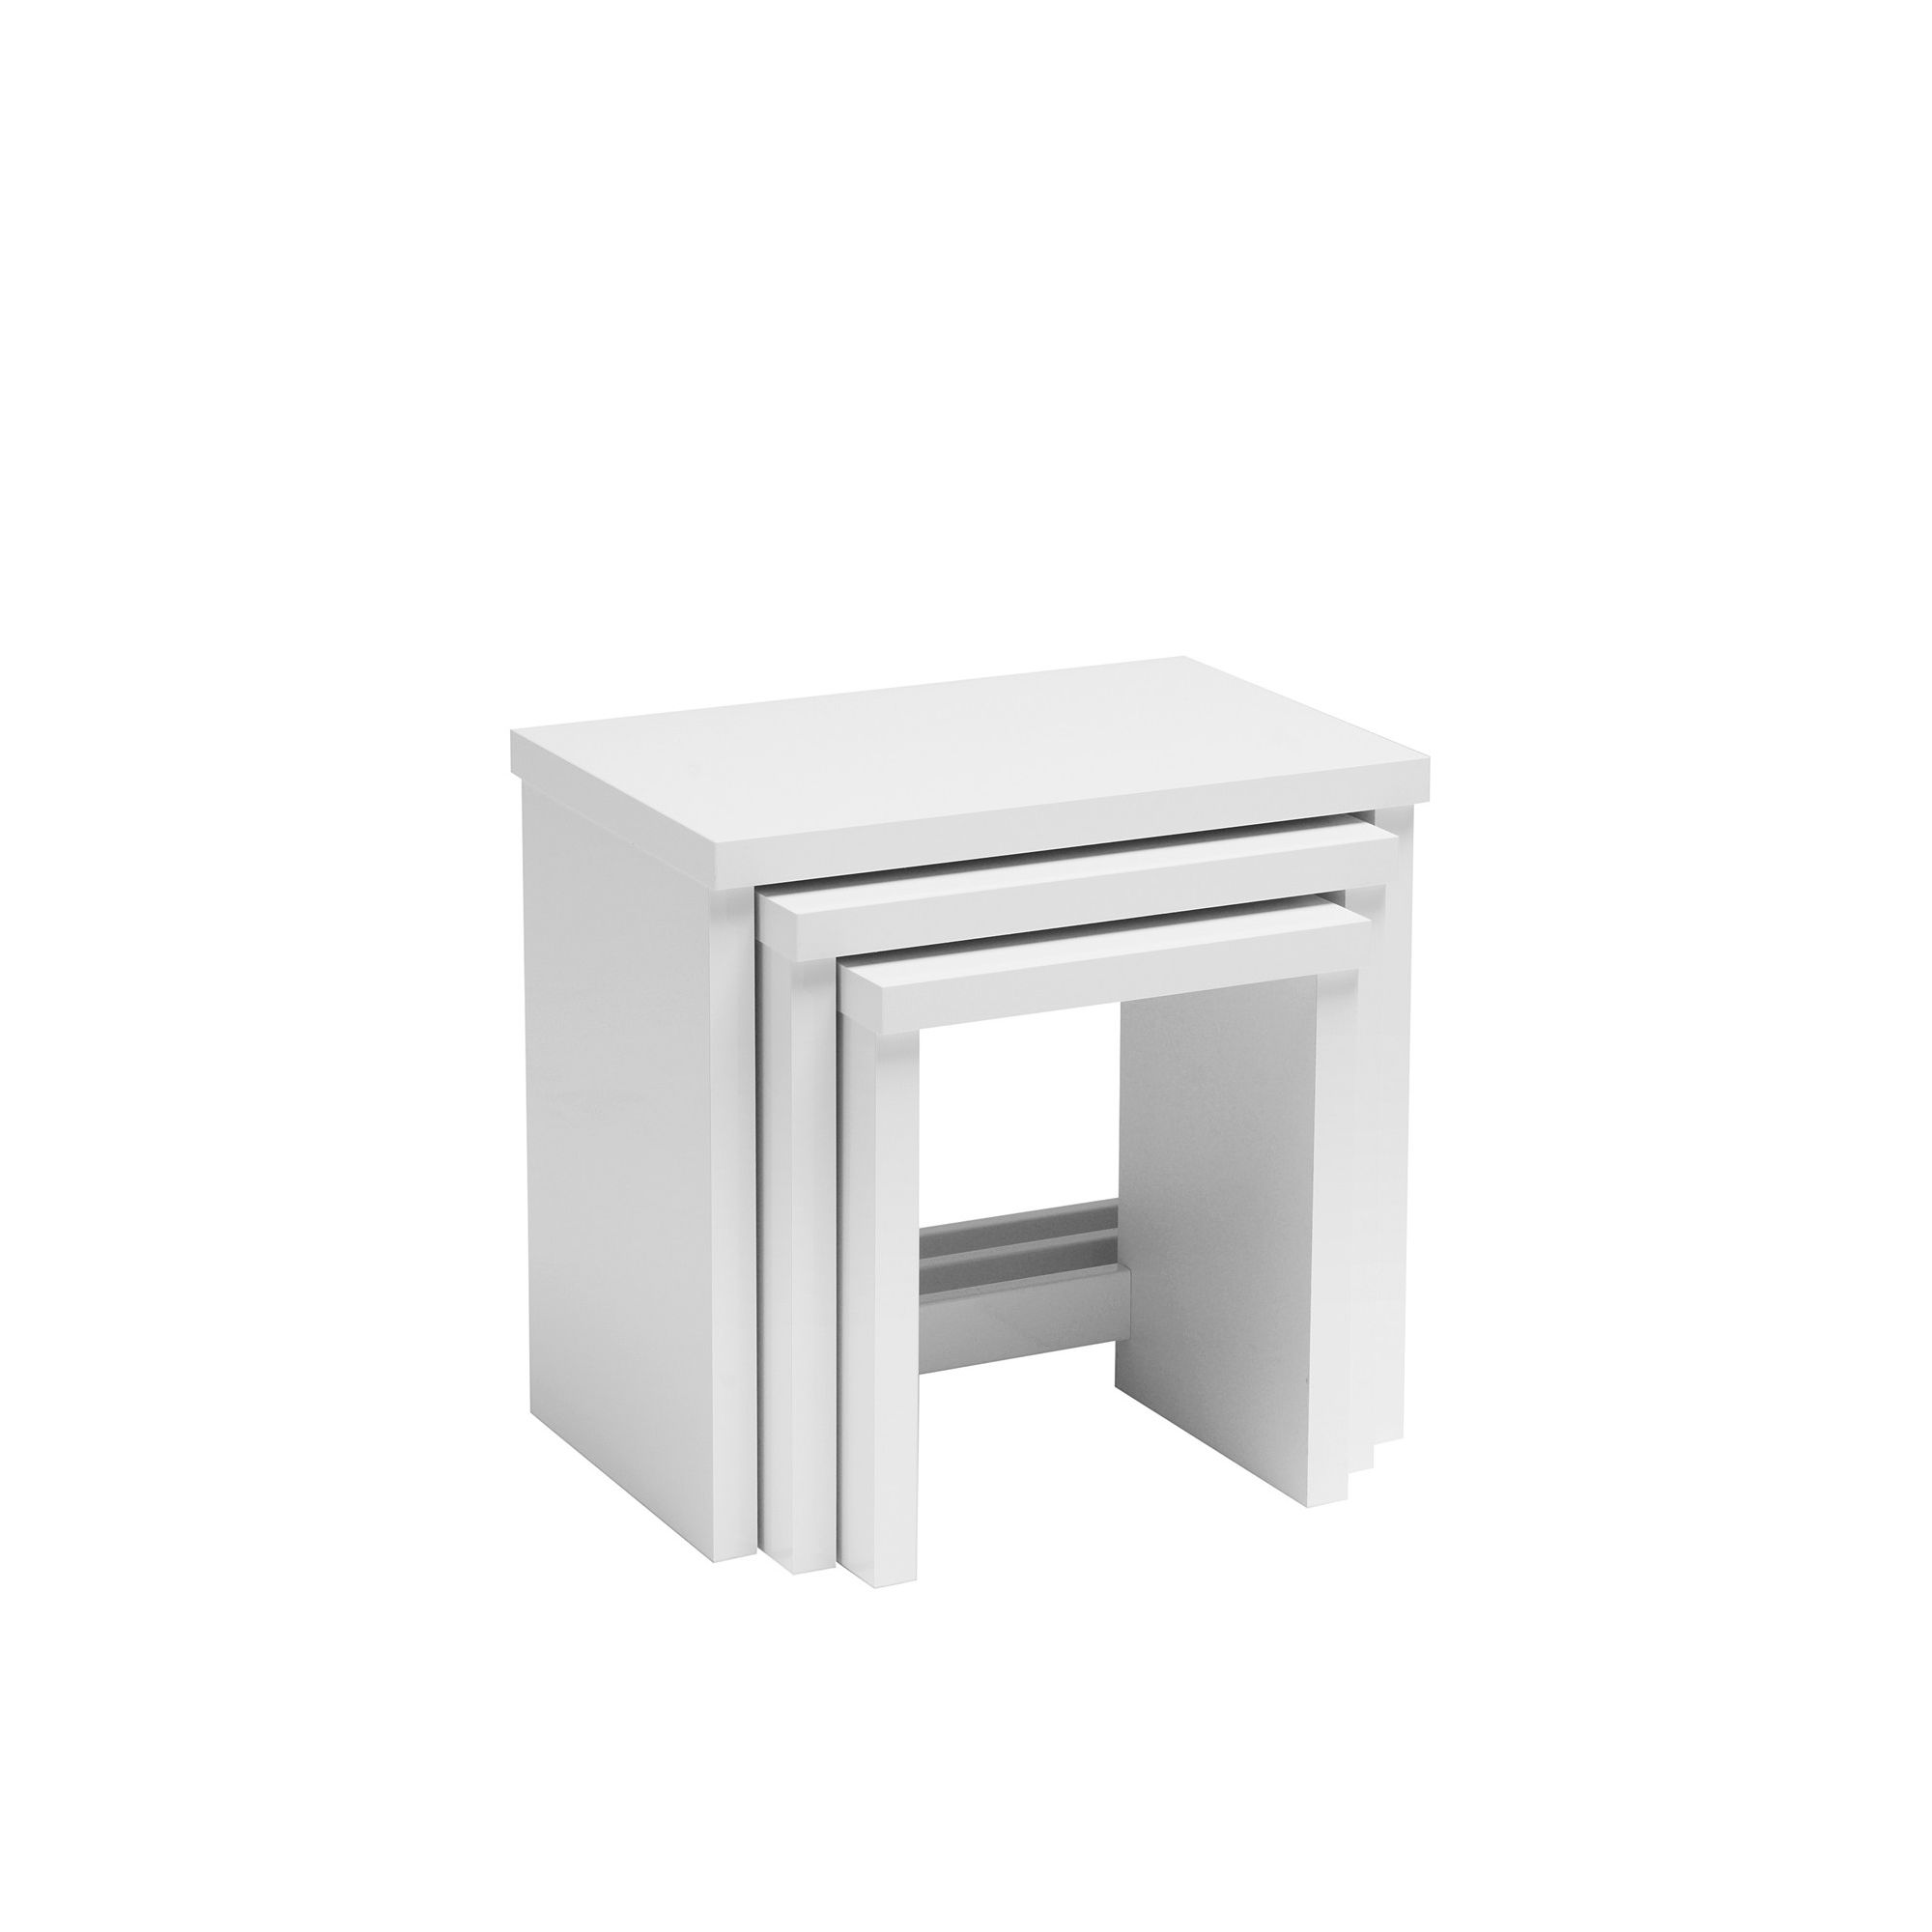 Caxton Manhattan Nest of Tables in White Gloss at Tesco Direct